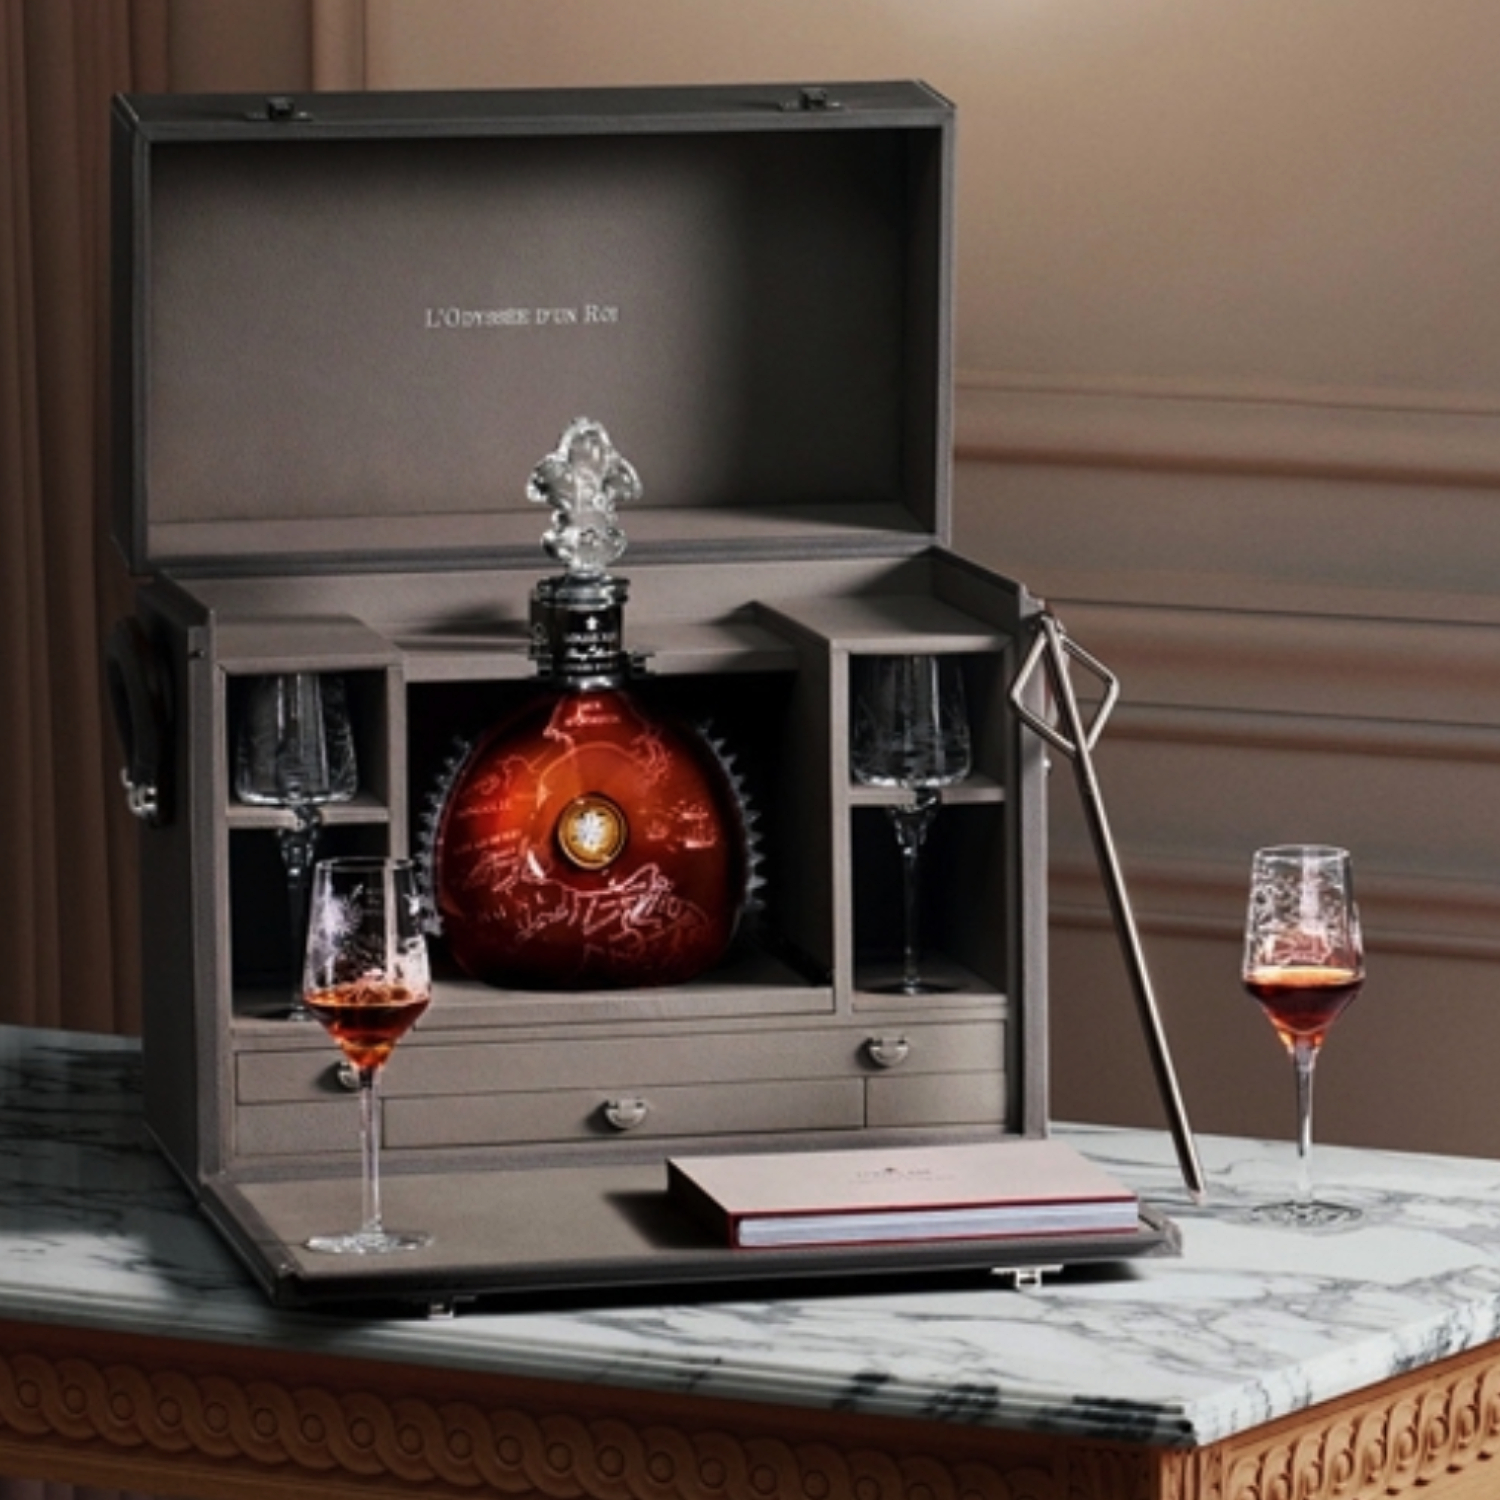 Louis XIII with Hermes box